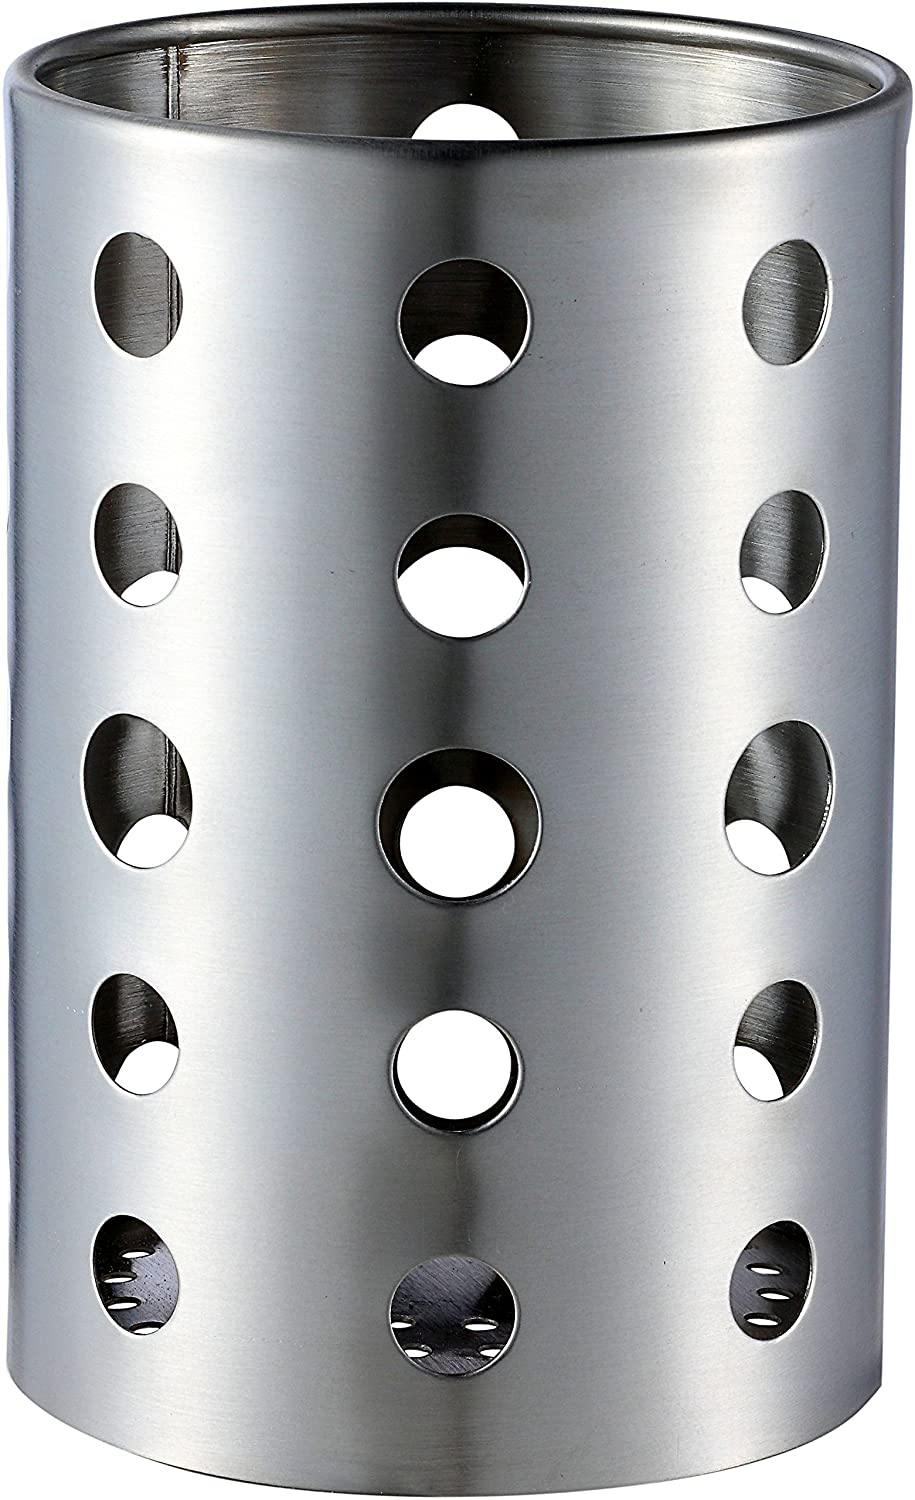 Pro Chef Kitchen Tools Stainless Steel Utensil Organizer Caddy - Organize Your Silverware, Cutlery, Cooking Utensils and Gadgets With a Large Commercial Restaurant Quality Flatware Caddy Holder